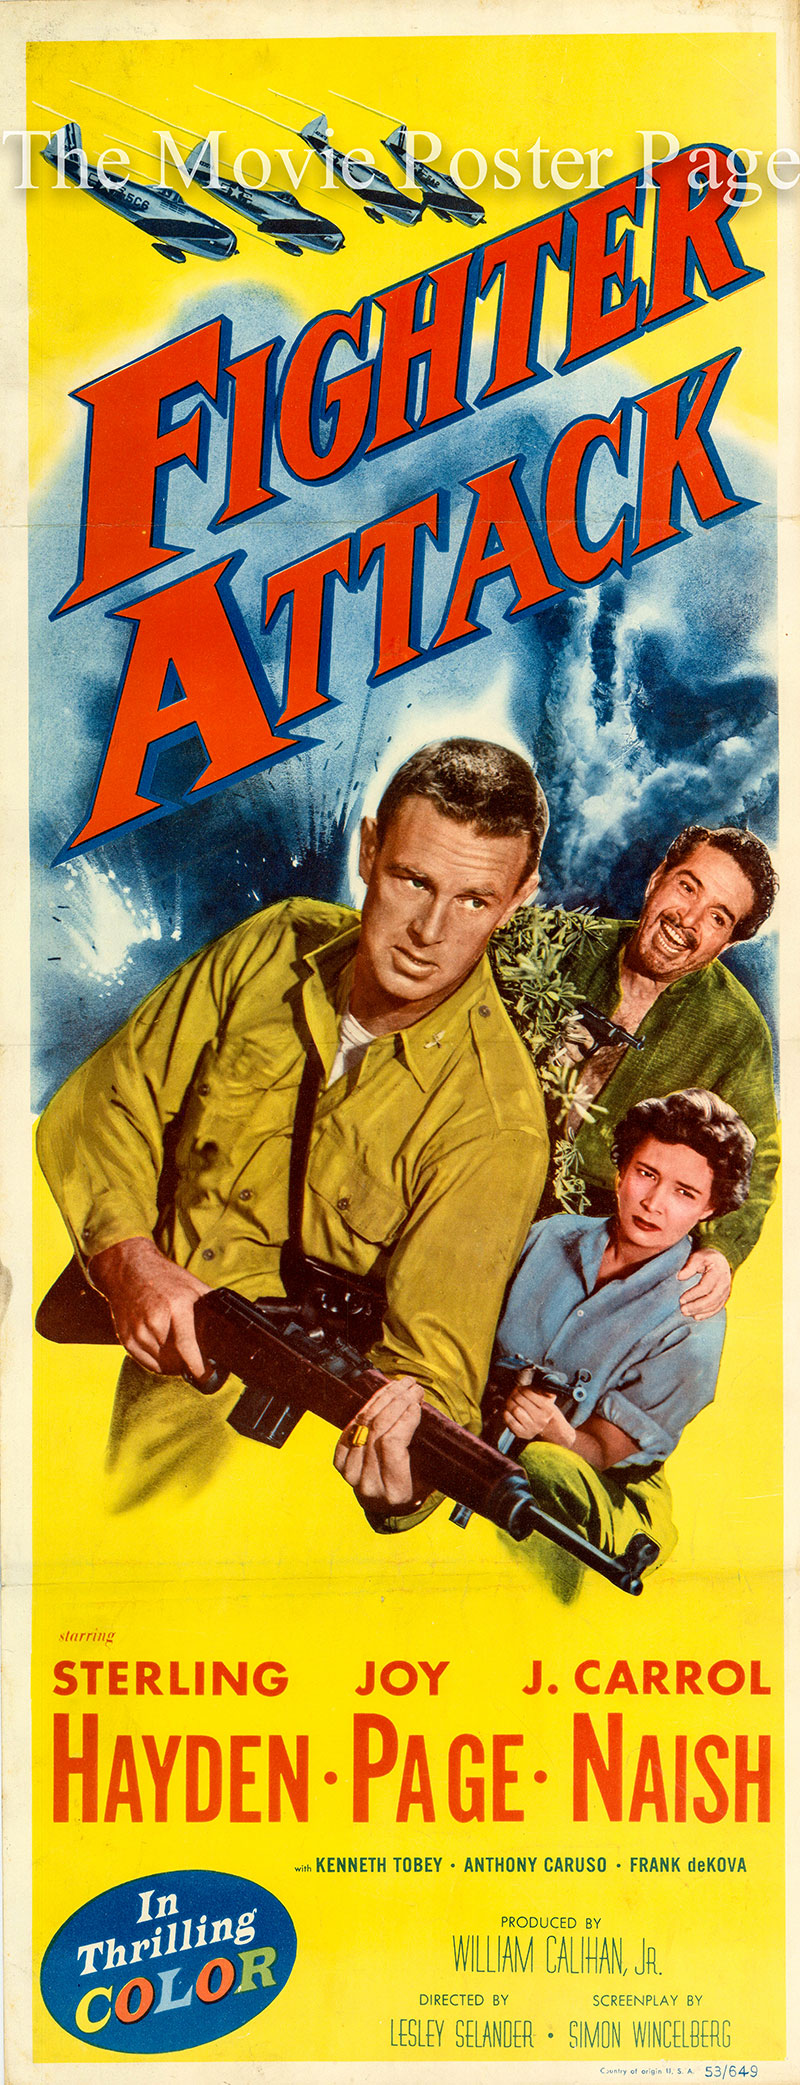 Pictured is the US one-sheet promotional poster for the 1953 Lesley Selander film Fighter Attack starring Sterling Hayden.